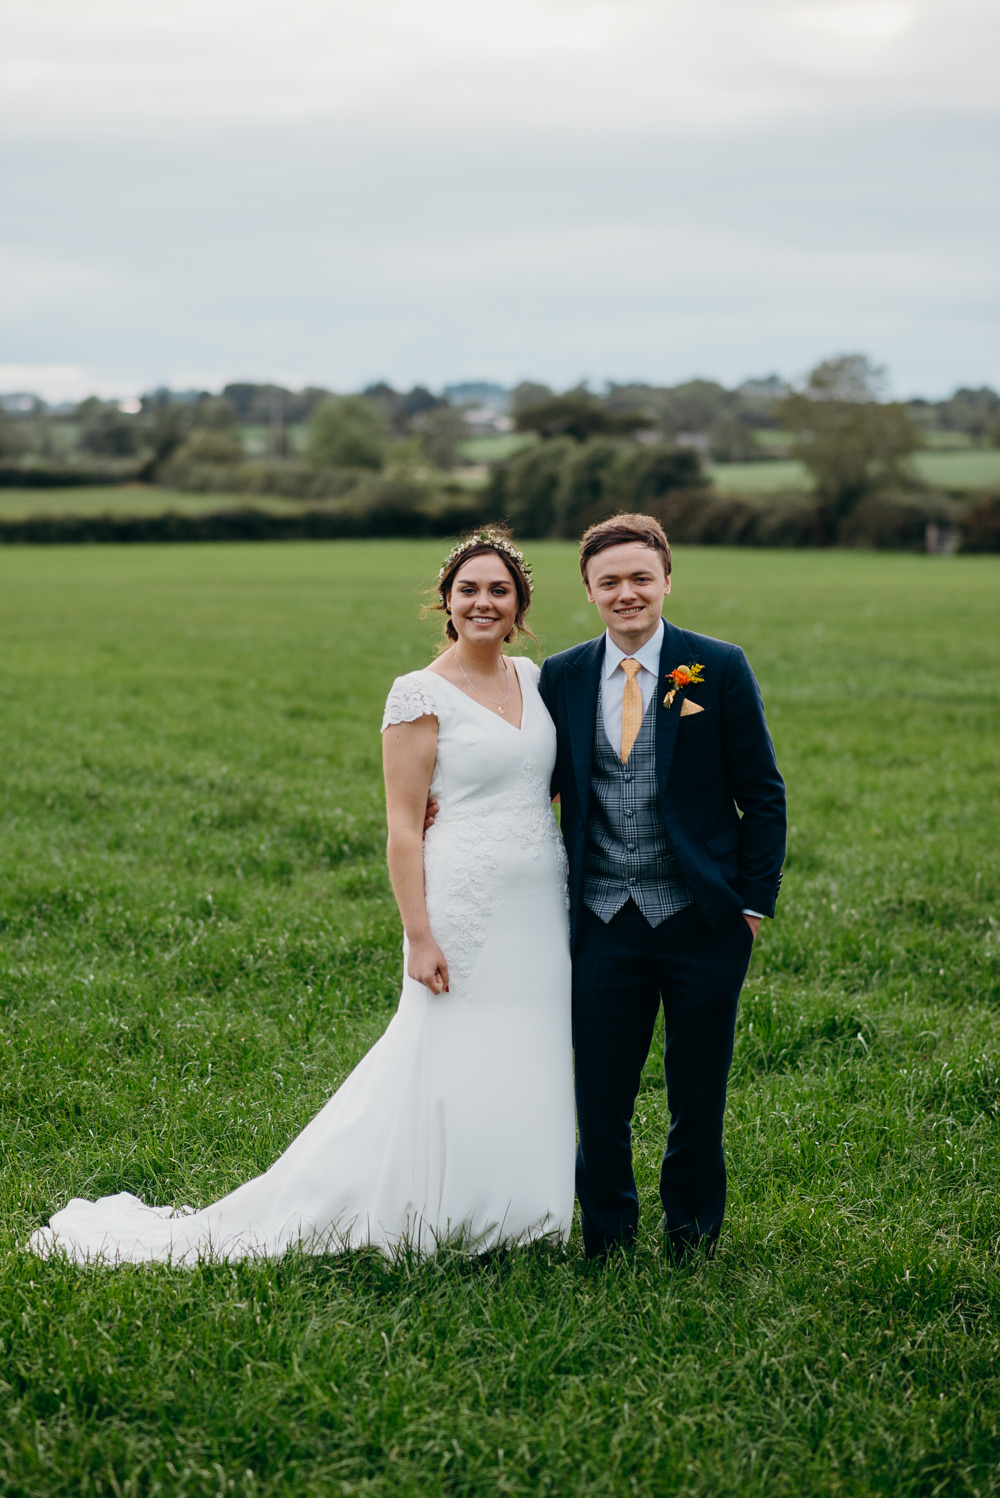 Bride Bridal Dress Gown St Patrick Lace Cap Sleeves Colourful Stretch Tent Wedding Peter Mackey Photography